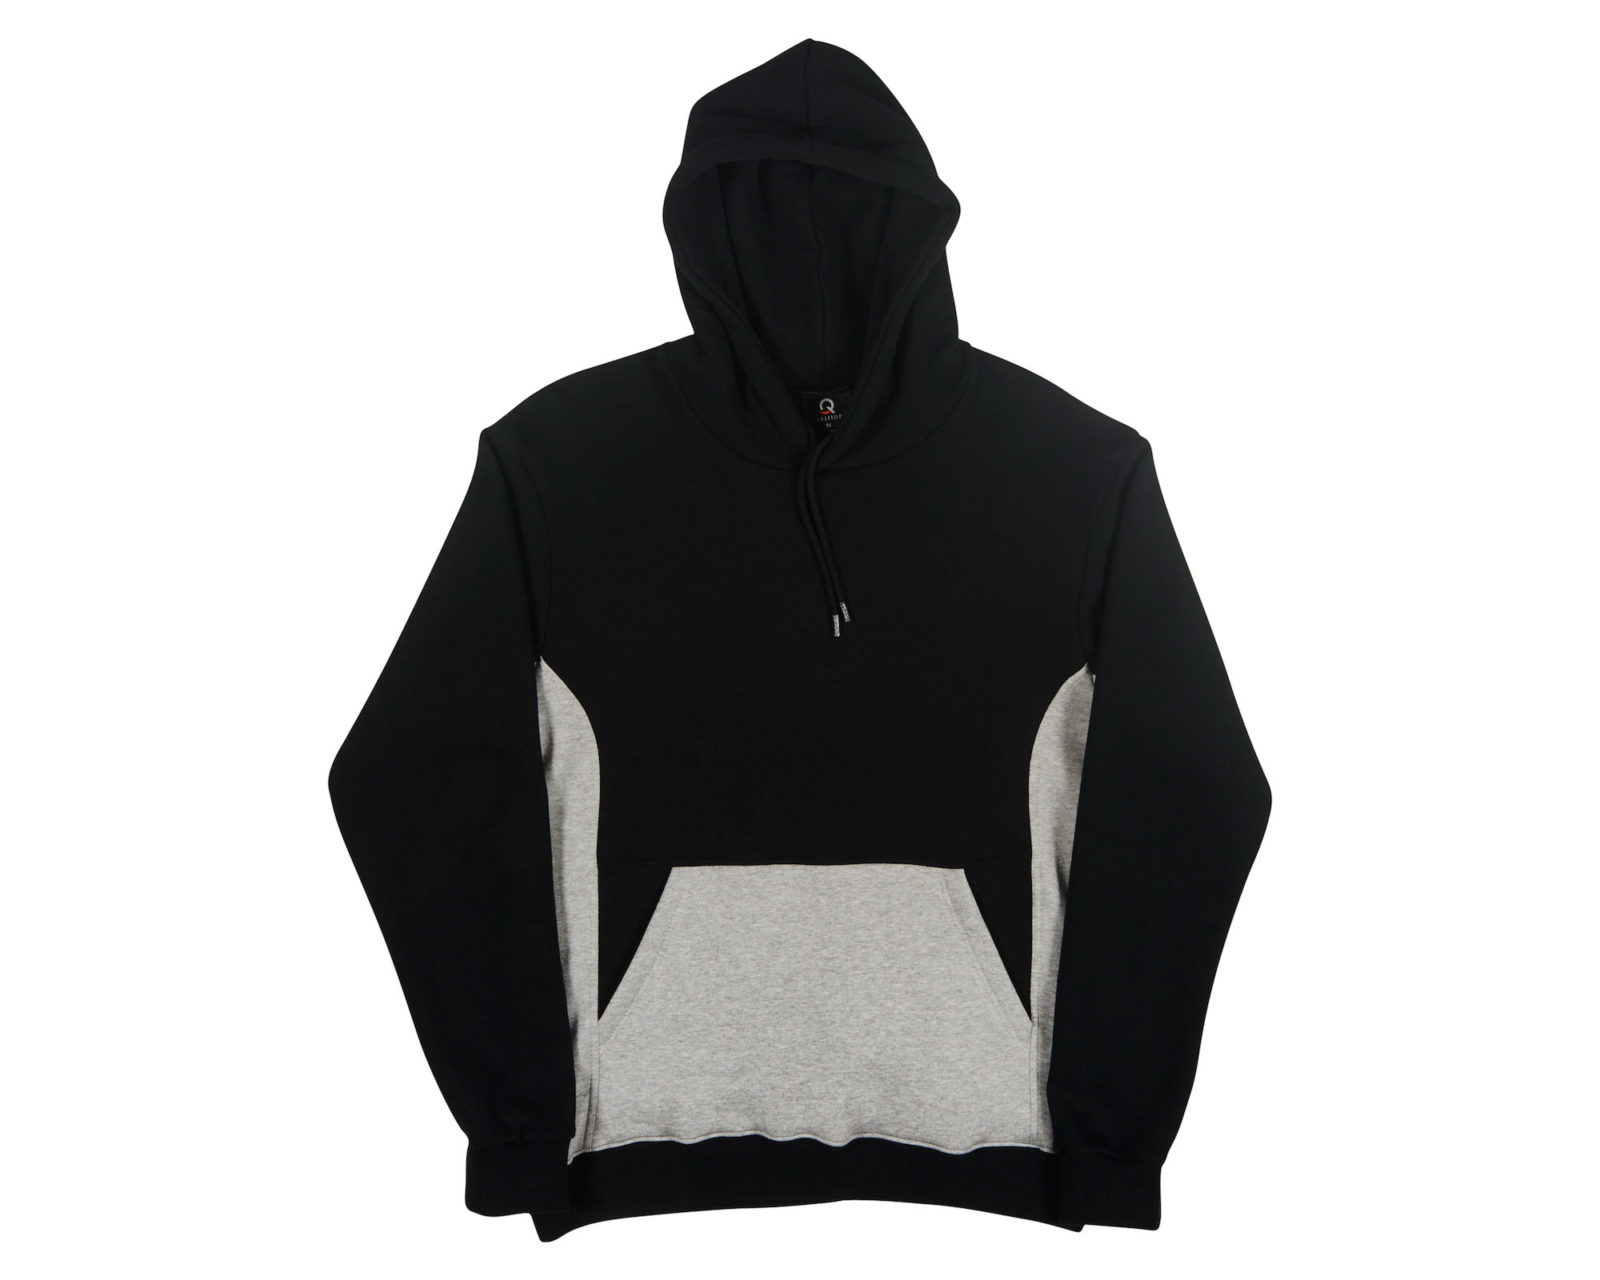 Qualitops Mens Two Tone Hoodie Polycotton Australian made clothing